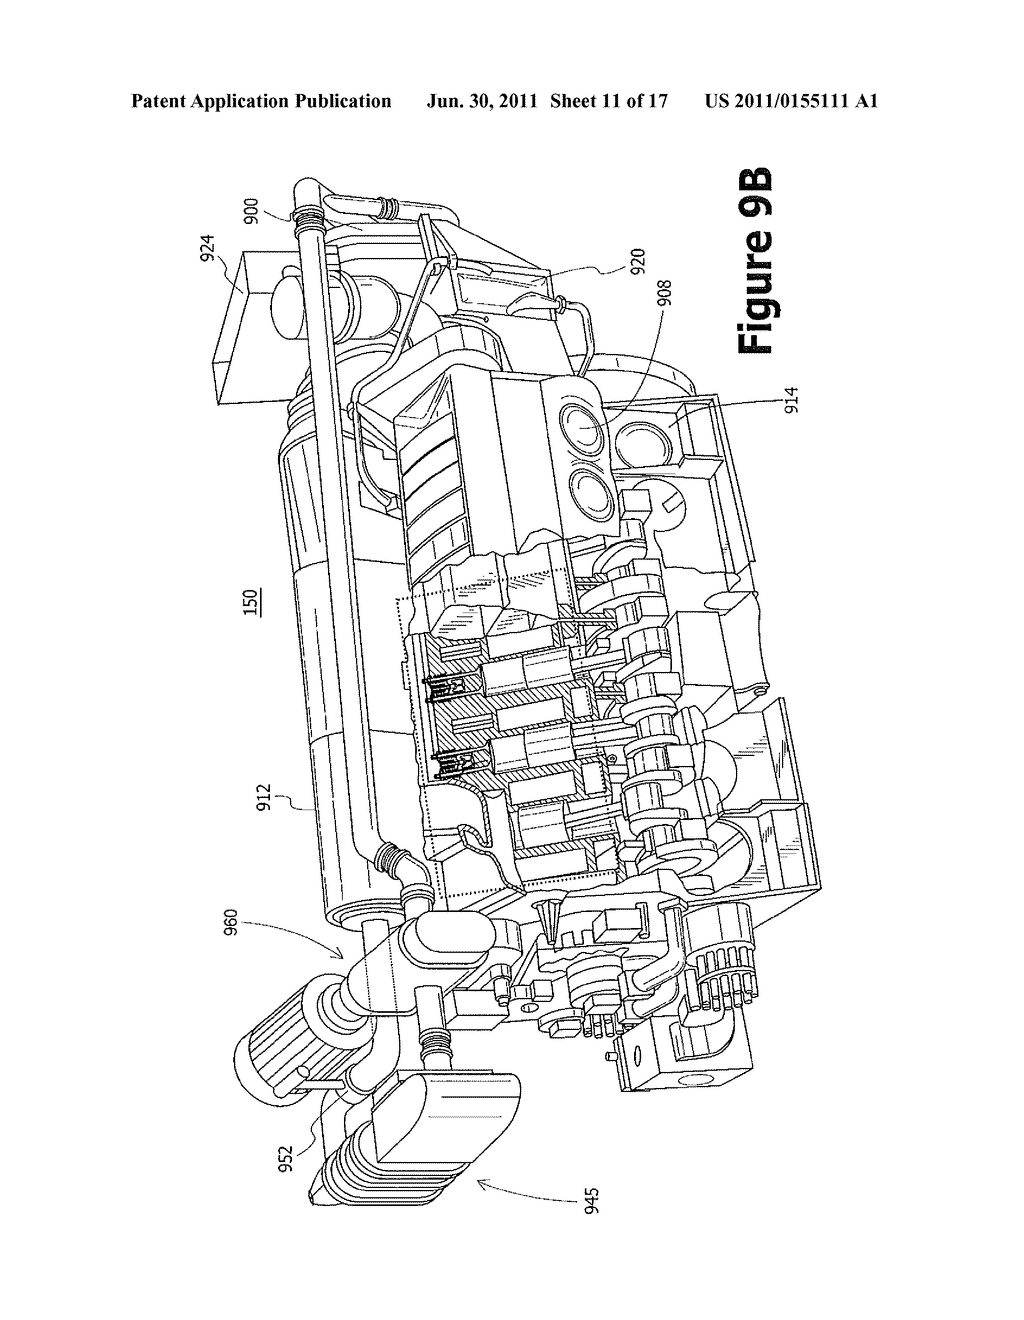 Exhaust Gas Recirculation System For A Locomotive Two Stroke Uniflow 2 Diesel Engine Diagram Scavenged Schematic And Image 12